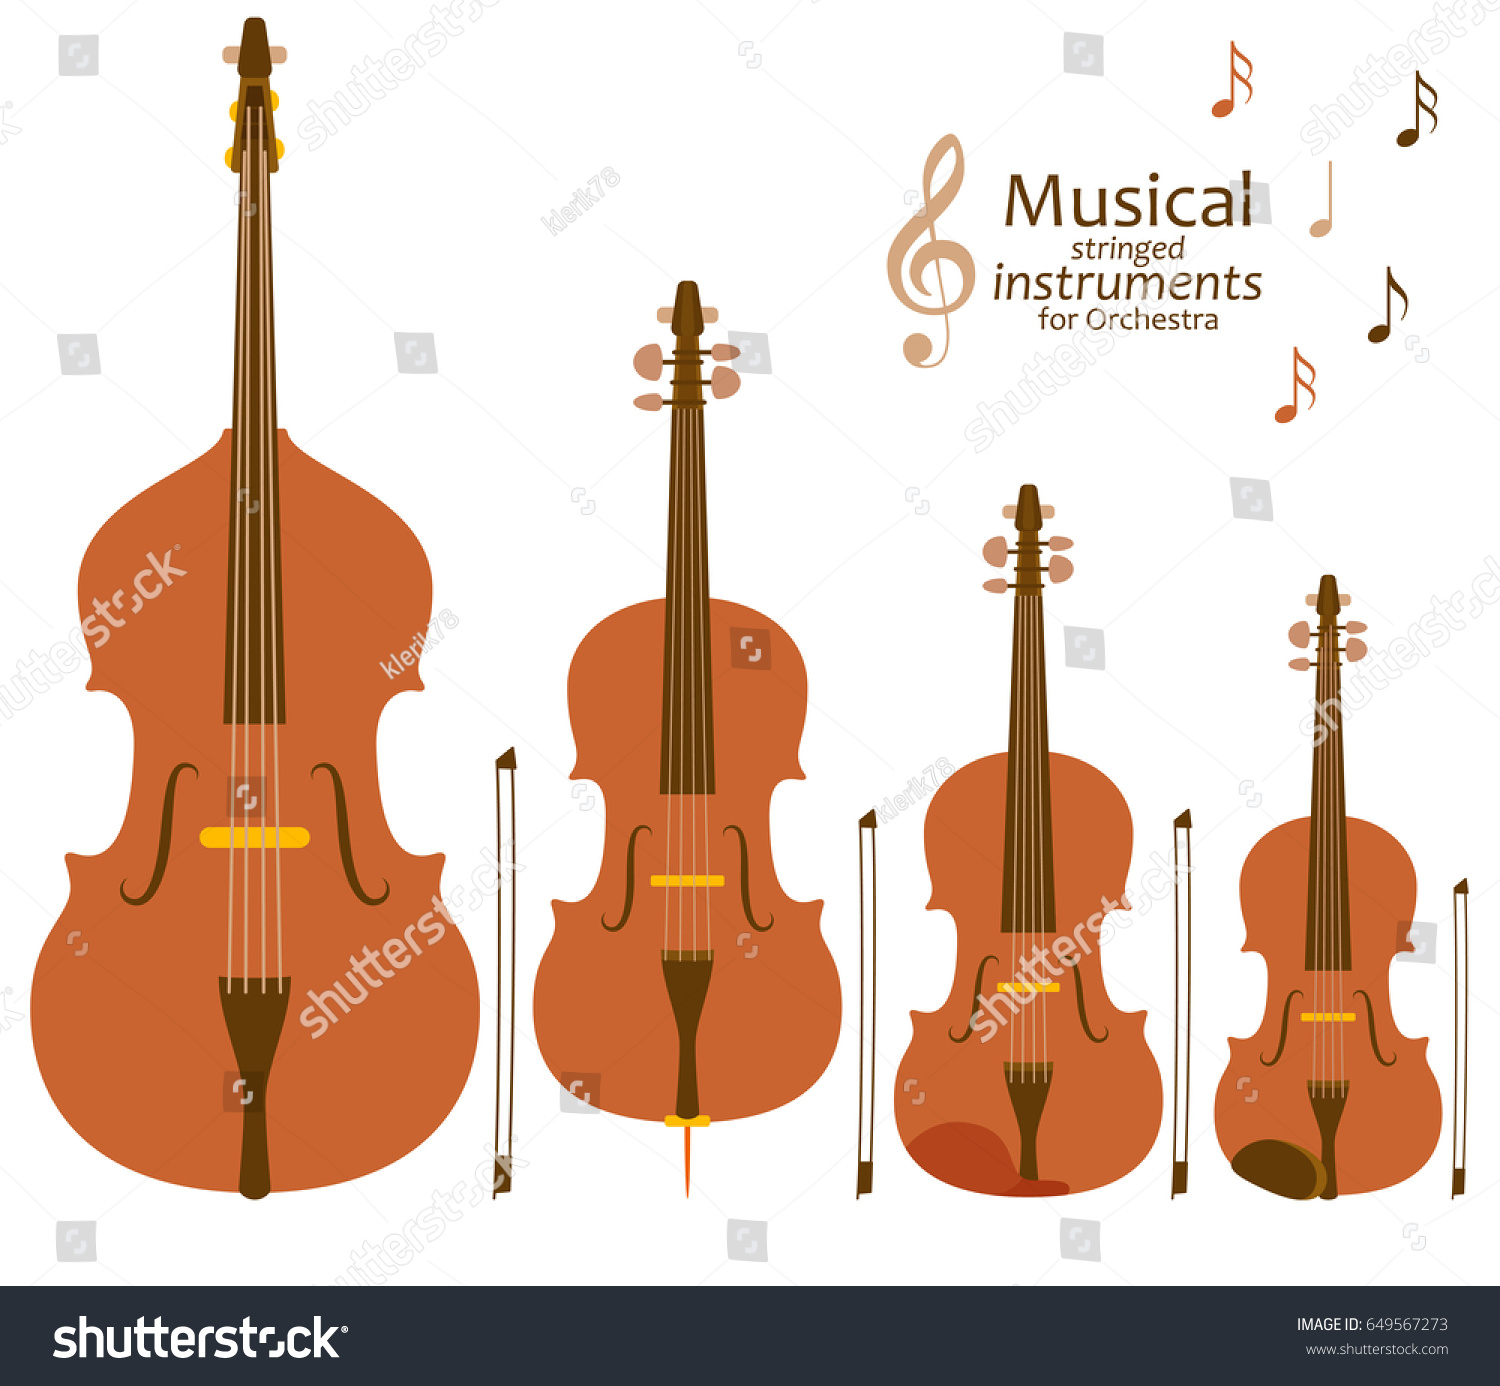 Musical Stringed Instruments Orchestra Vector Illustration